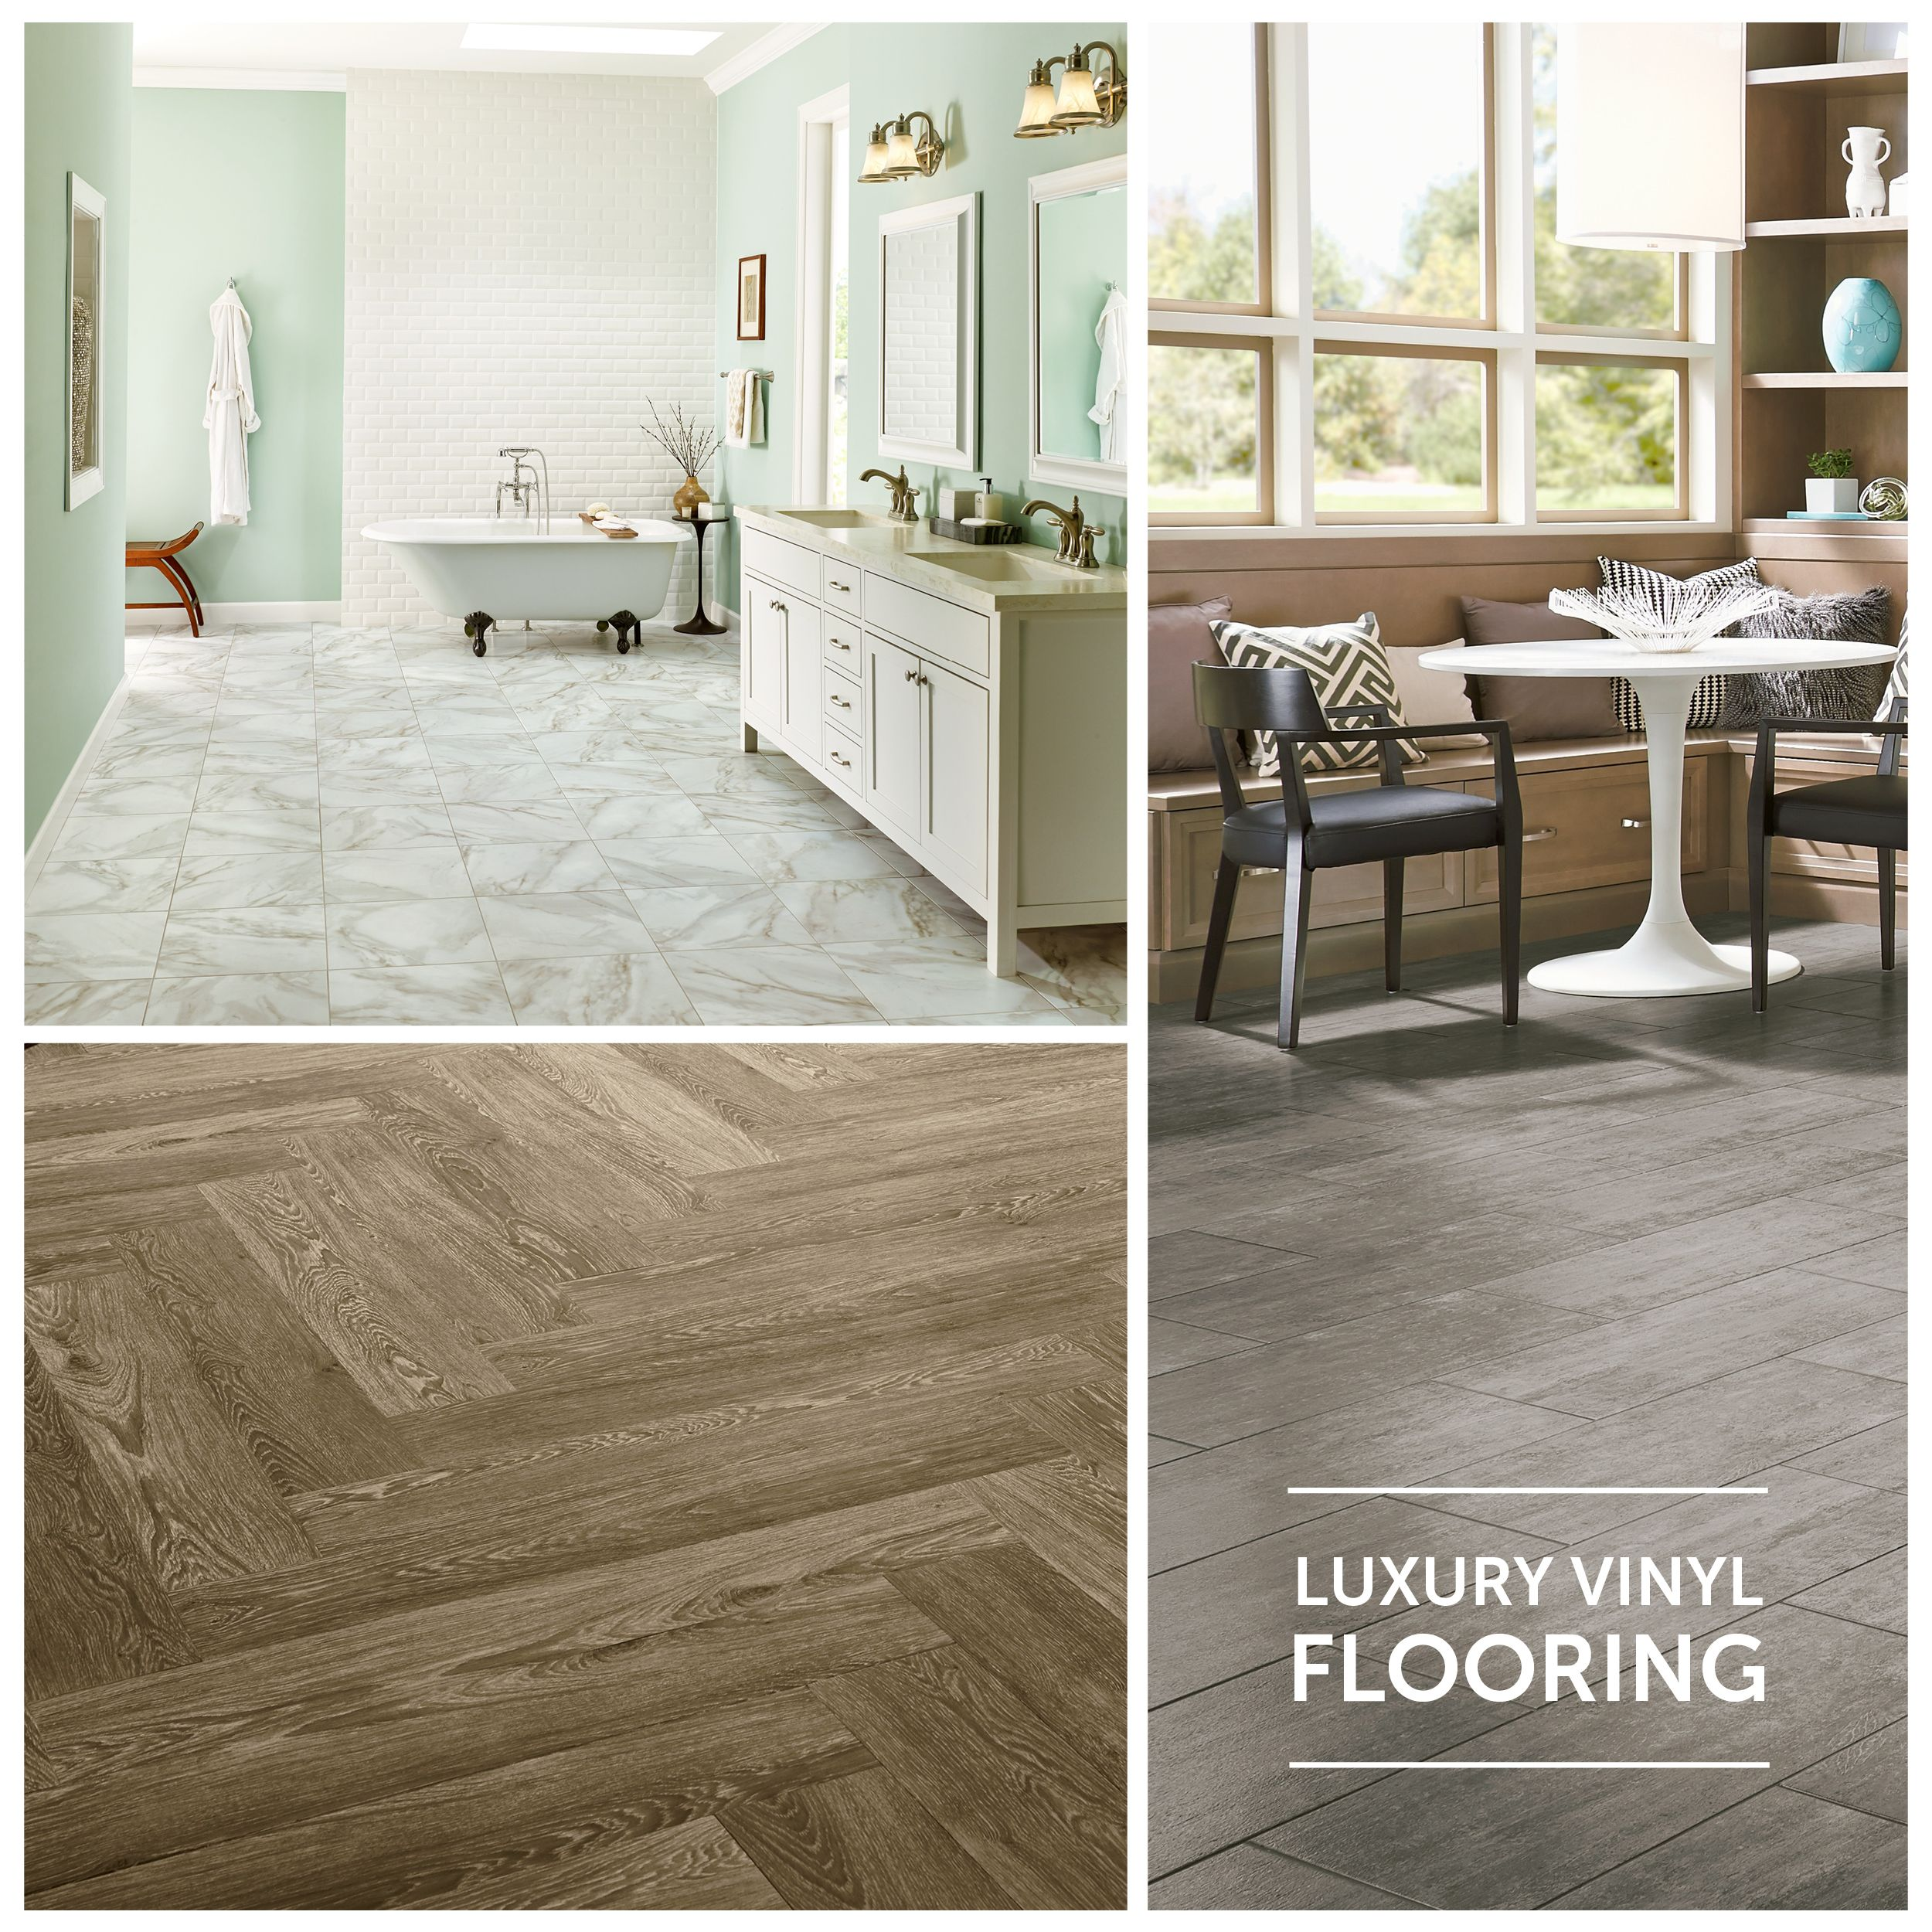 Luxury Vinyl Flooring Stone & Wood Looks LVT LVP